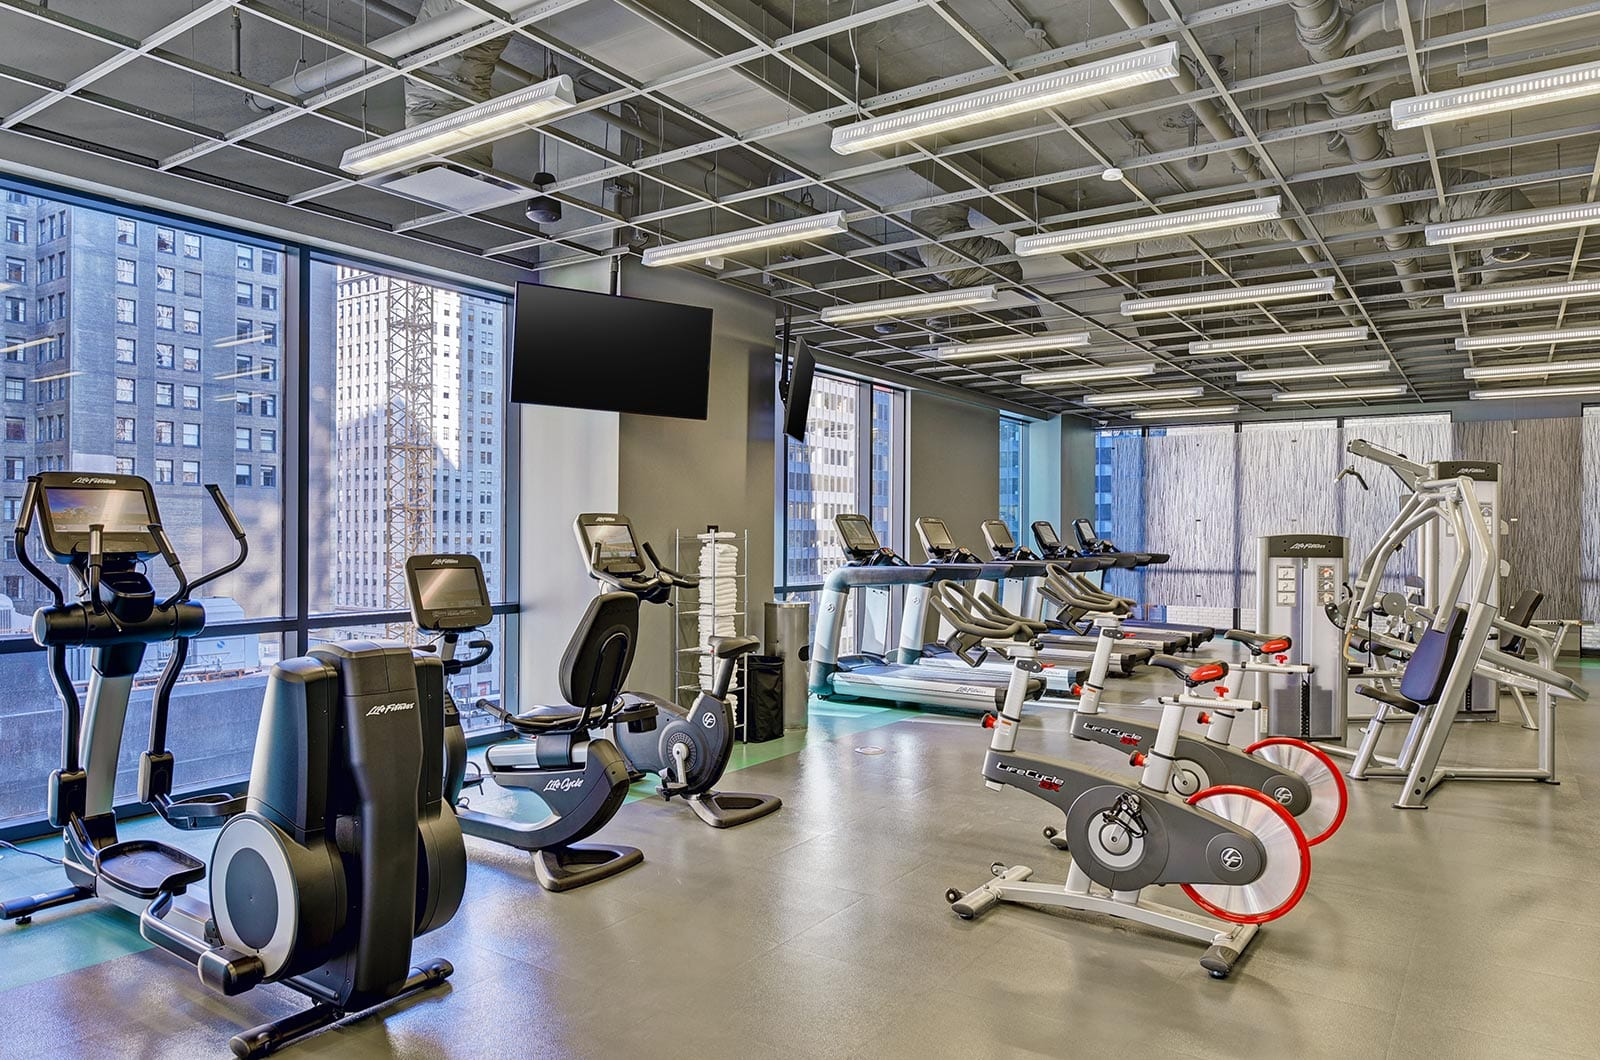 Virtual-tour-services-for-fitness-centers-Seattle-gym-photography-company-Seattle-Washington.jpg